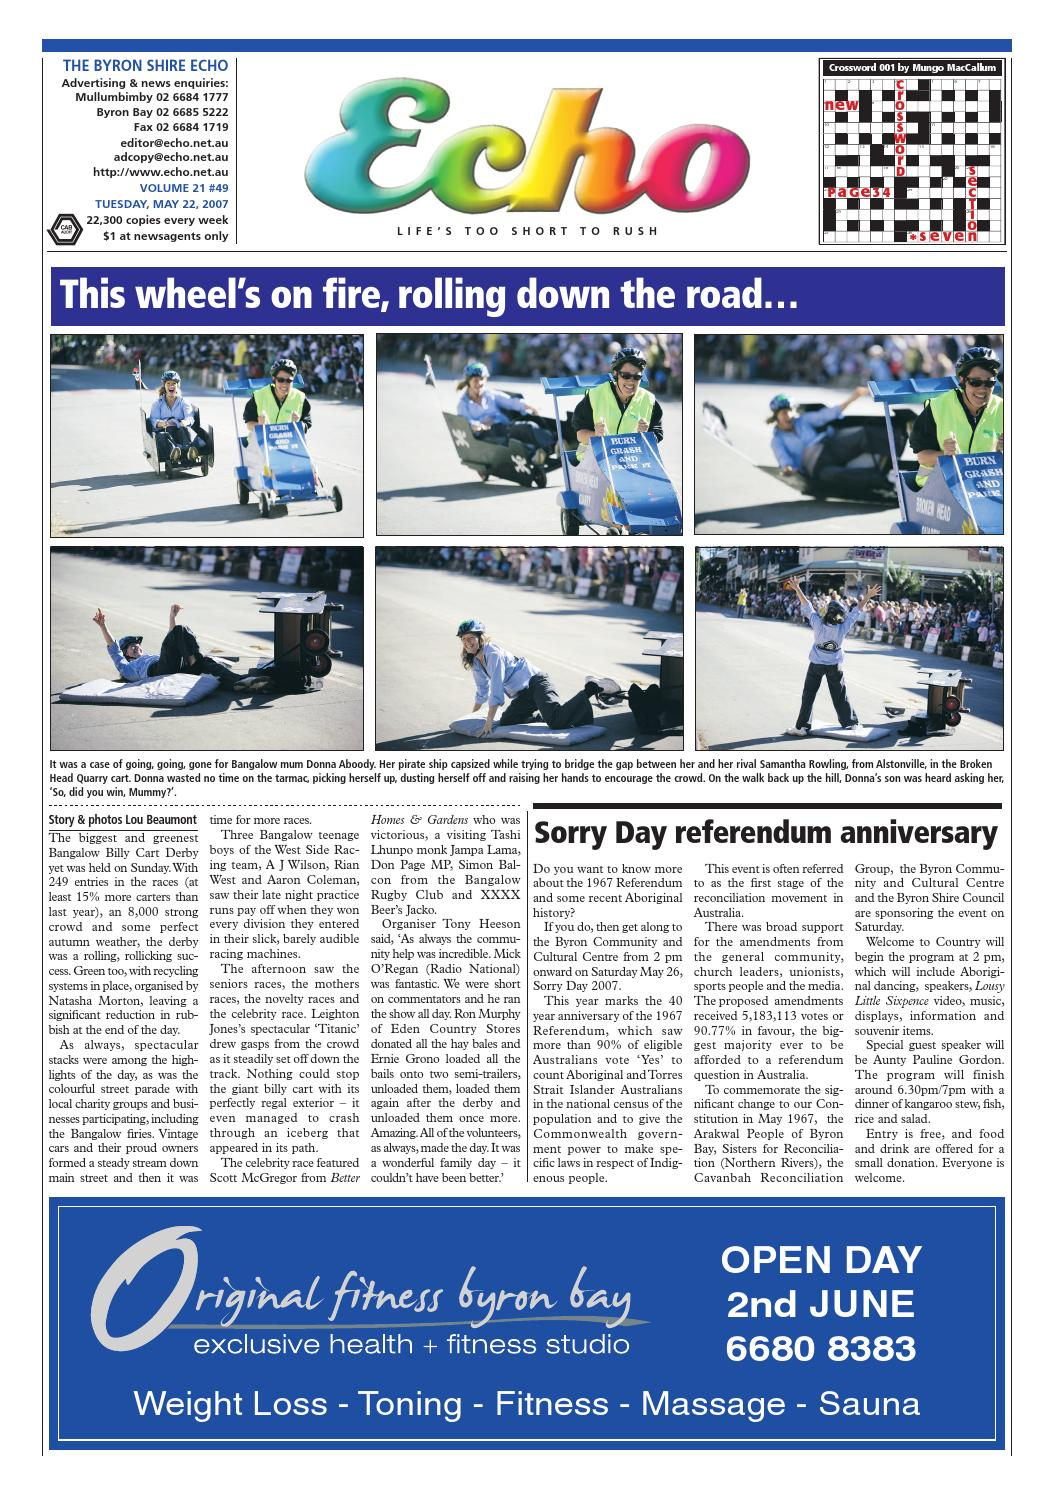 Byron Shire Echo Issue 2149 22 05 2007 By Publications Issuu Kaos Catching Fire